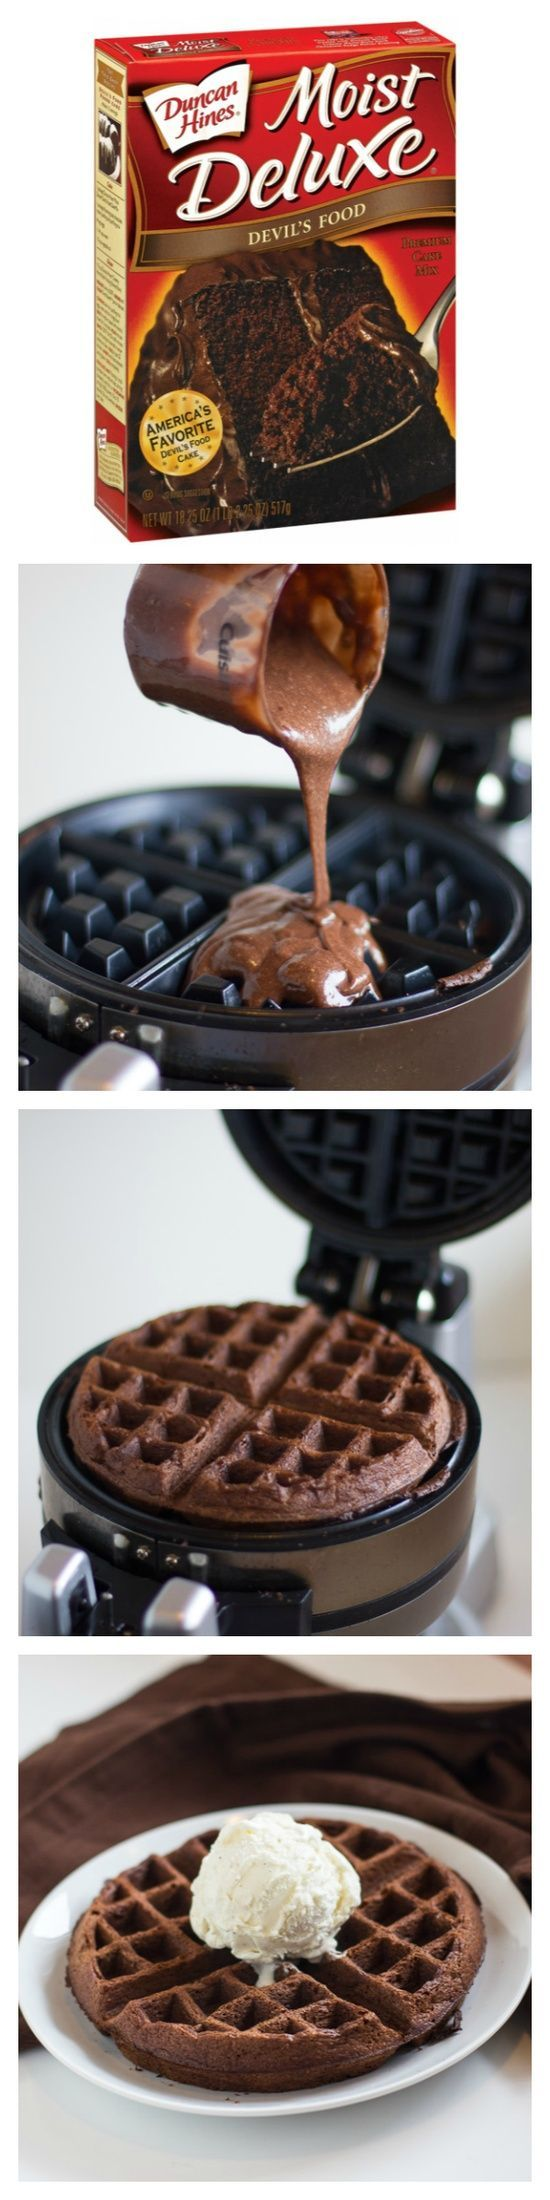 Let's do it! Brownie batter + waffle iron = 5 minute brownies [ AlldredgeWealthStrategies.com ] More